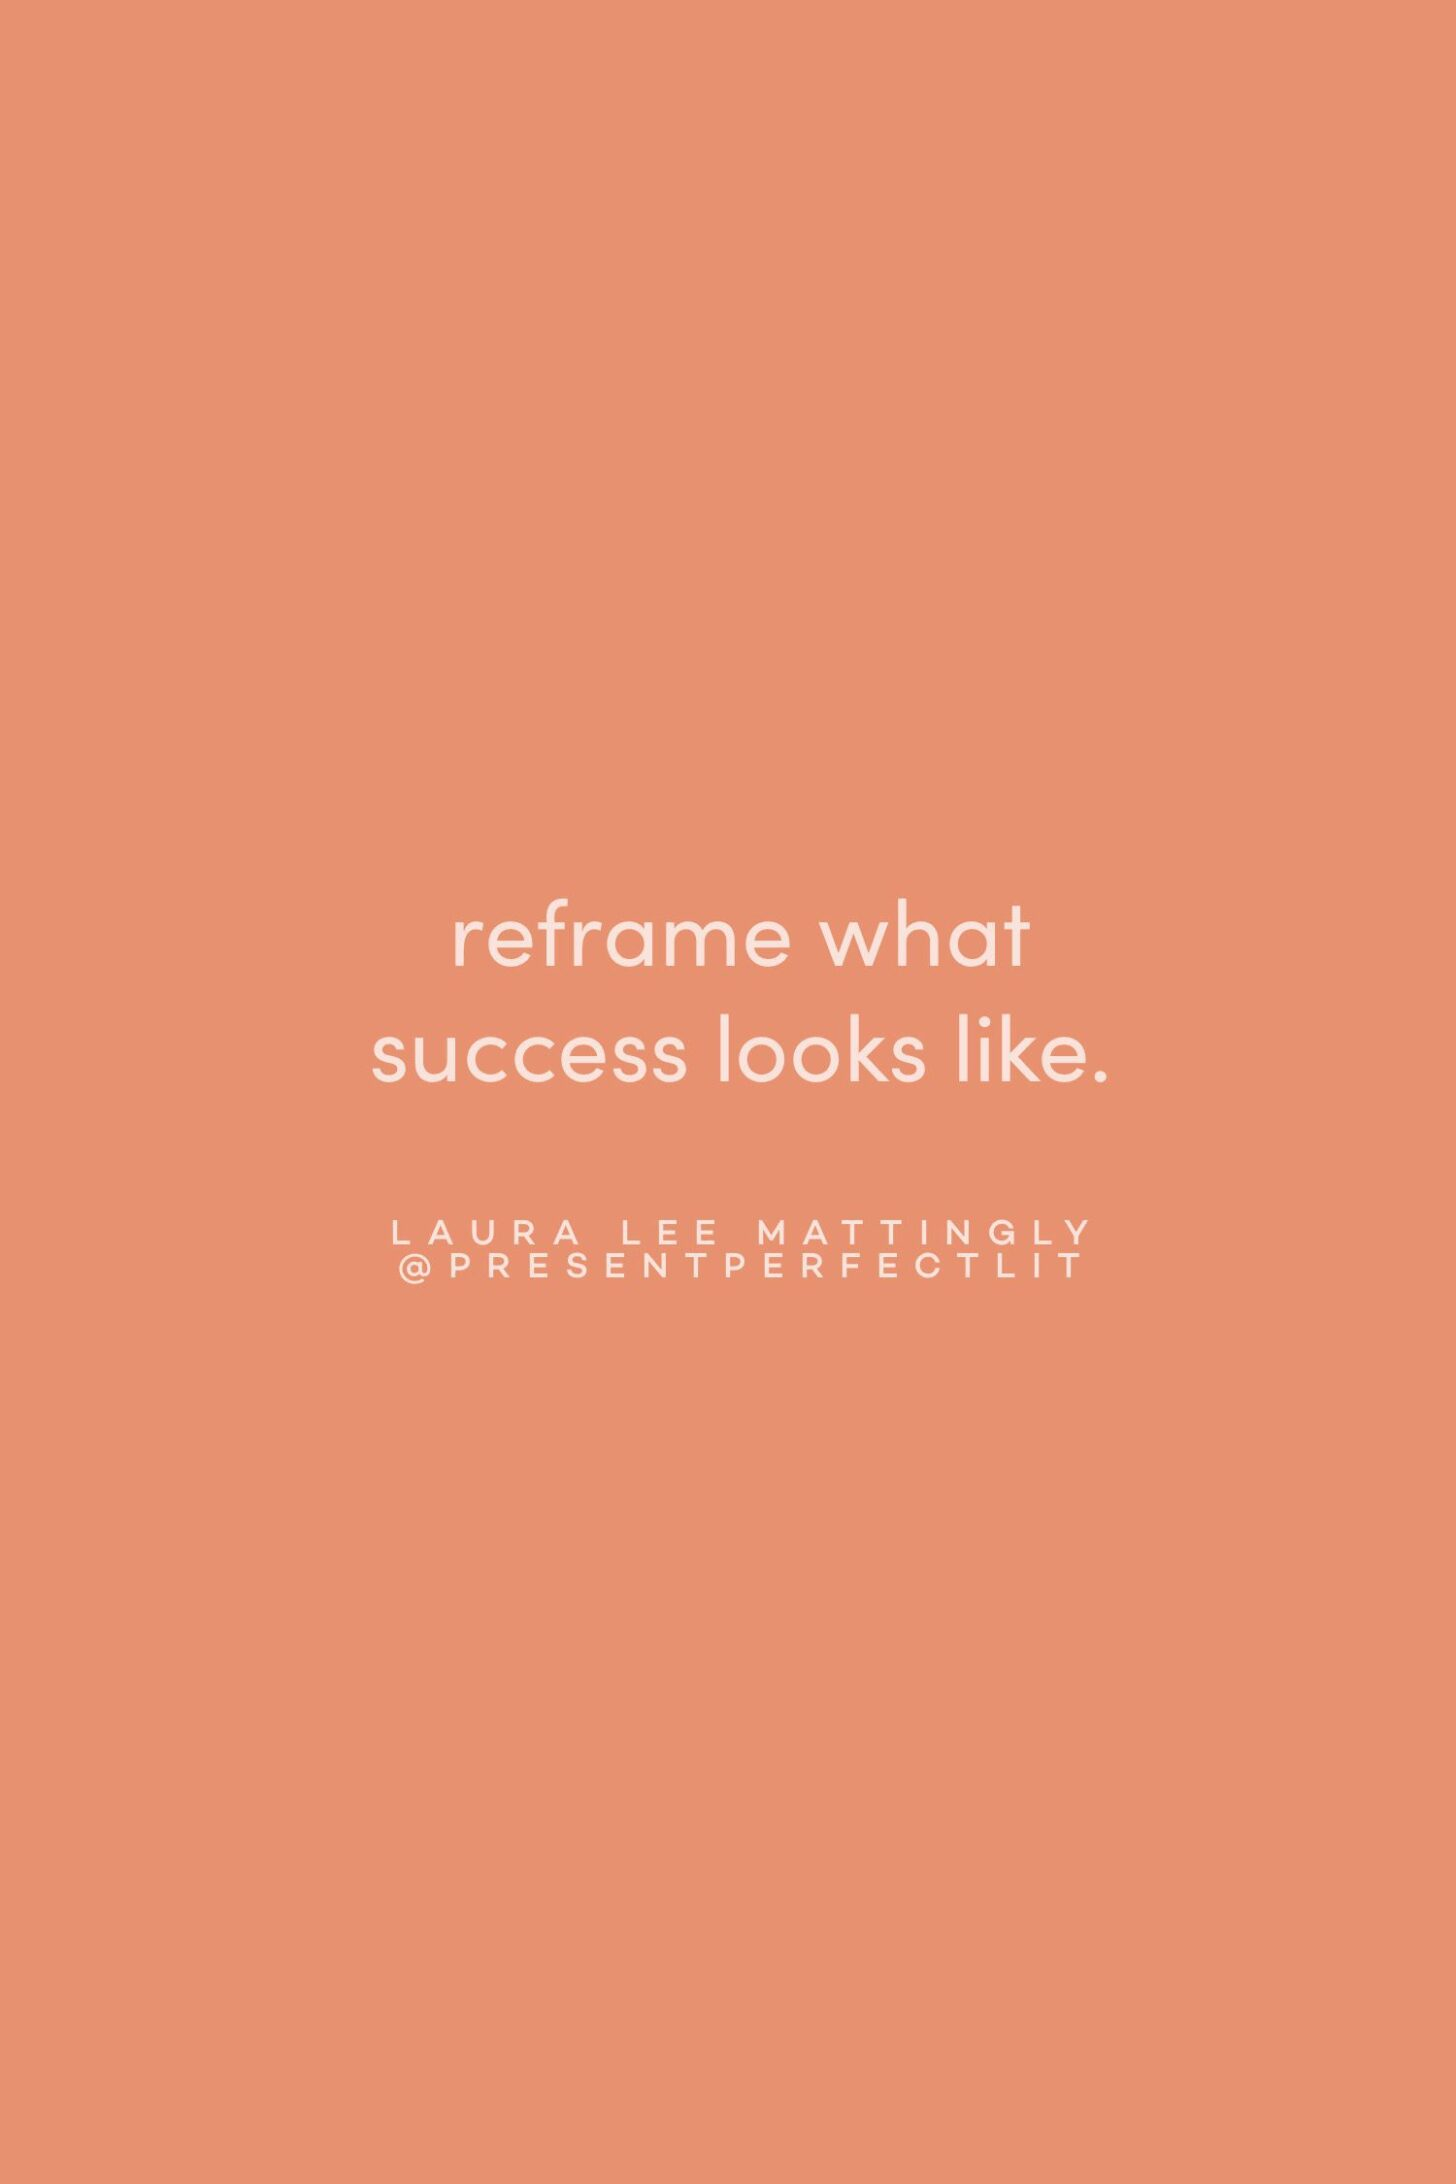 Quote on reframing success by Laura Lee Mattingly on the Feel Good Effect Podcast #realfoodwholelife #feelgoodeffectpodcast #inspirationalquote #positivityquote #motivationalquote #goalsettingquote #controlquote #productivityquote #meaningfulquote #successfulquote